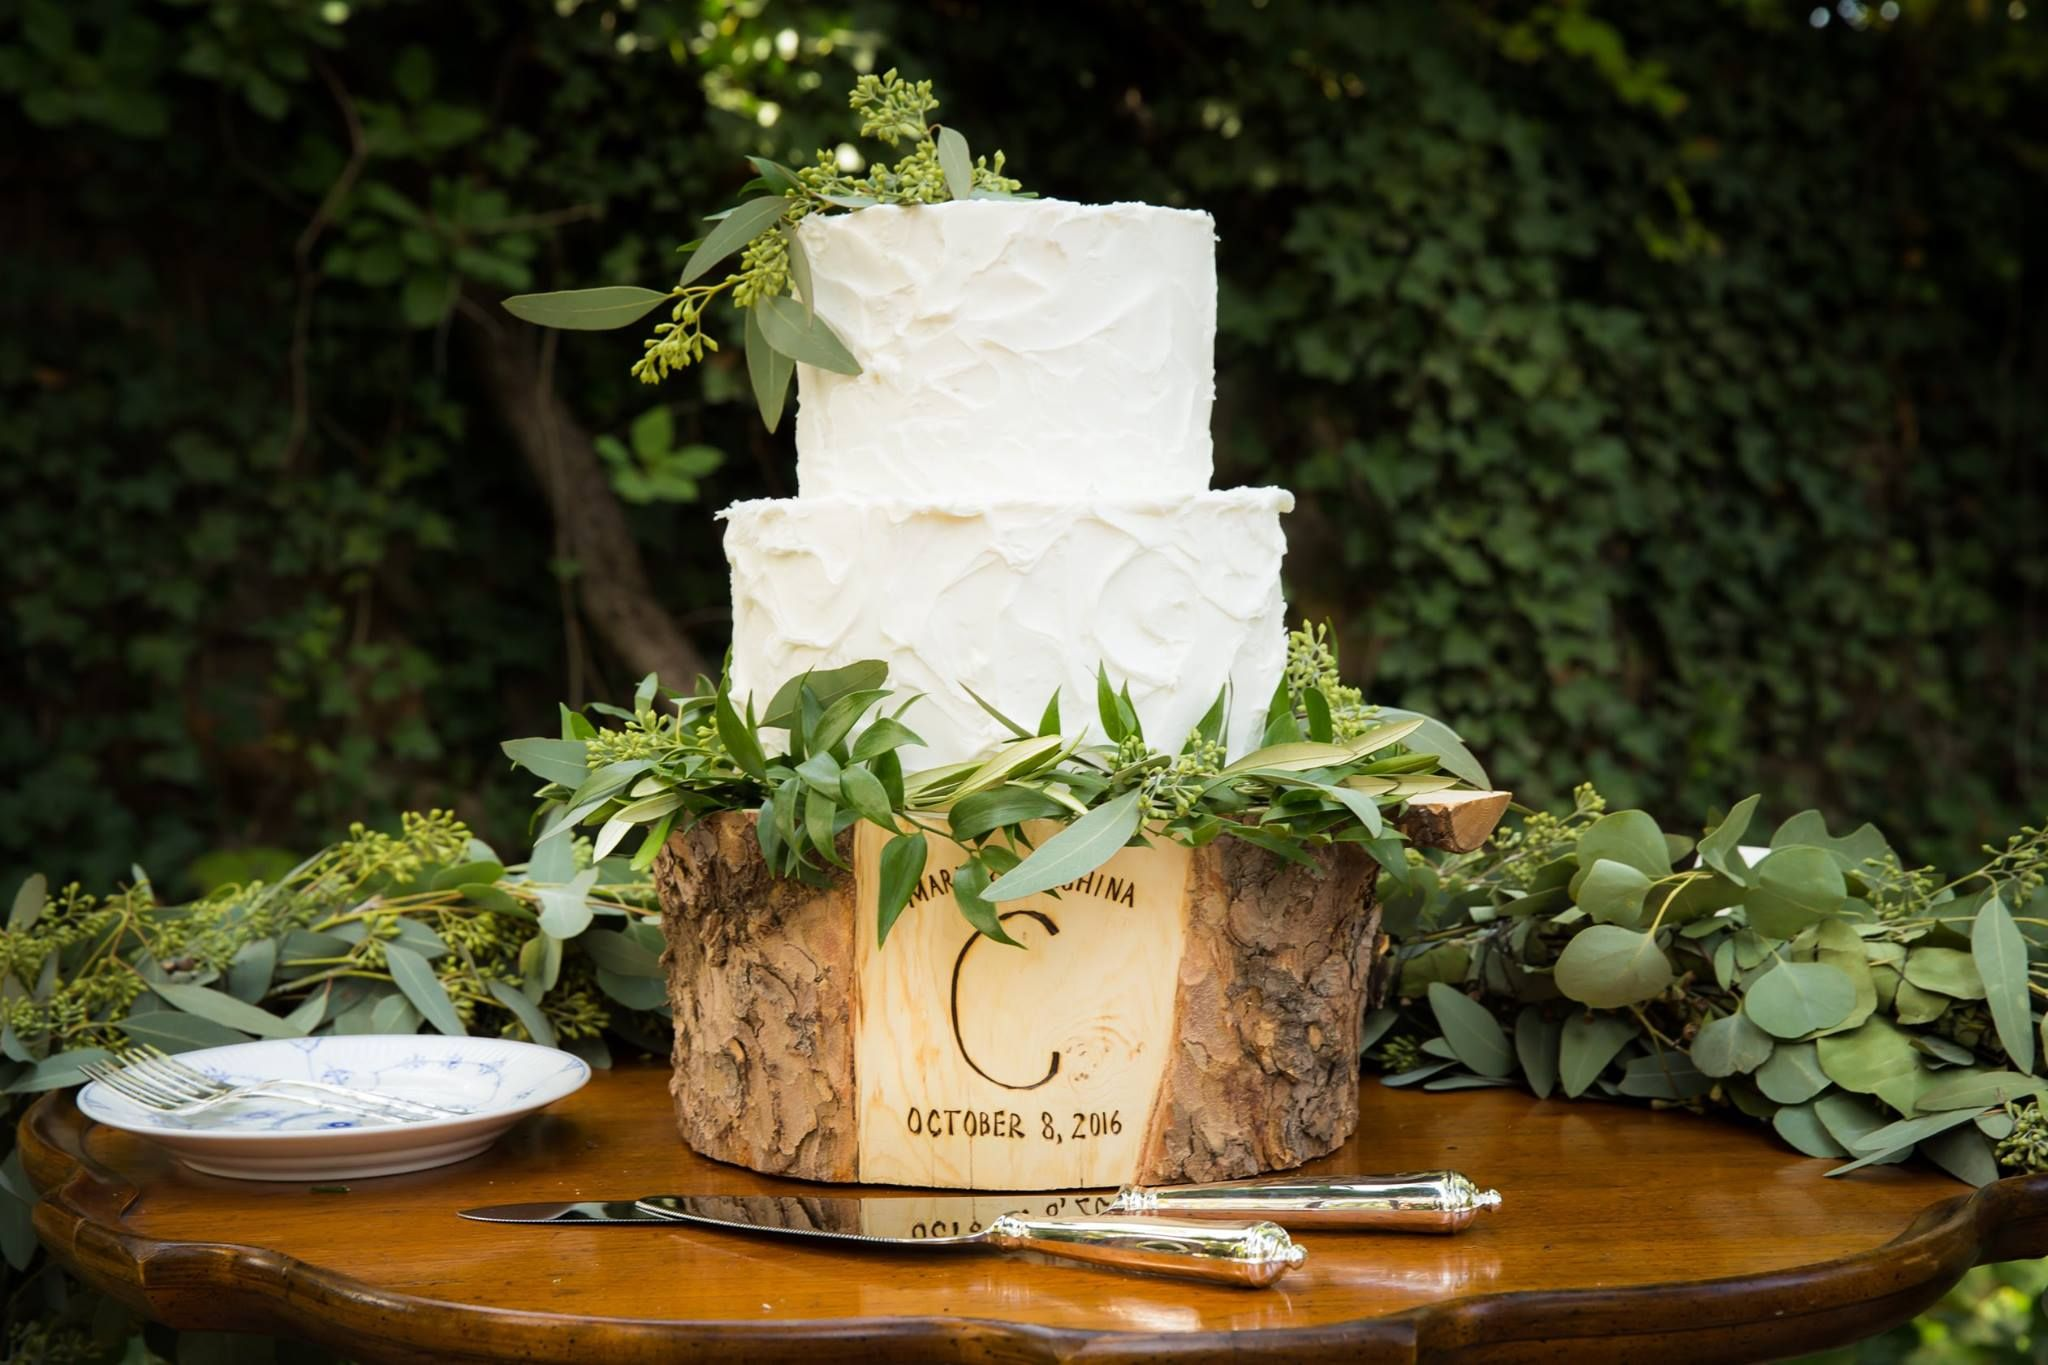 Cake by @saltcakecity. Custom cake wooden stand by Postscripts on Etsy @paulabertolino. Display set up and florals by @RefinedVE